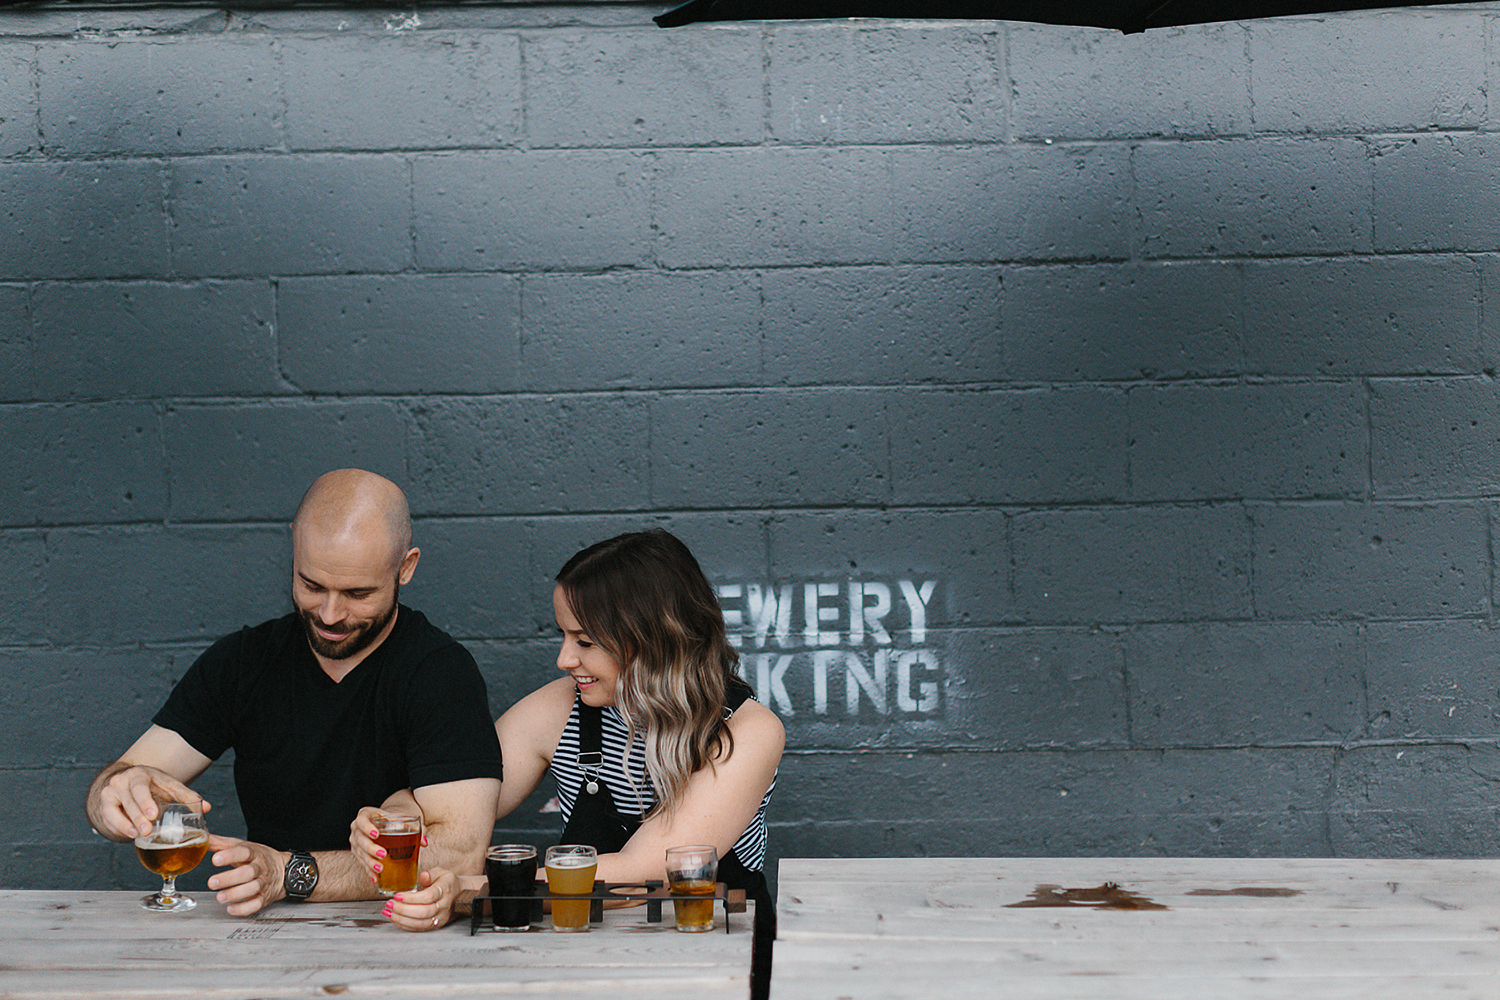 downtown-toronto-in-home-engagement-session-toronto-wedding-photographer-ryanne-hollies-photography-documentary-candid-natural-photos-engaged-in-toronto-brewery-engagement-photos-fun-enjoyable-unique-couple-laughing.jpg